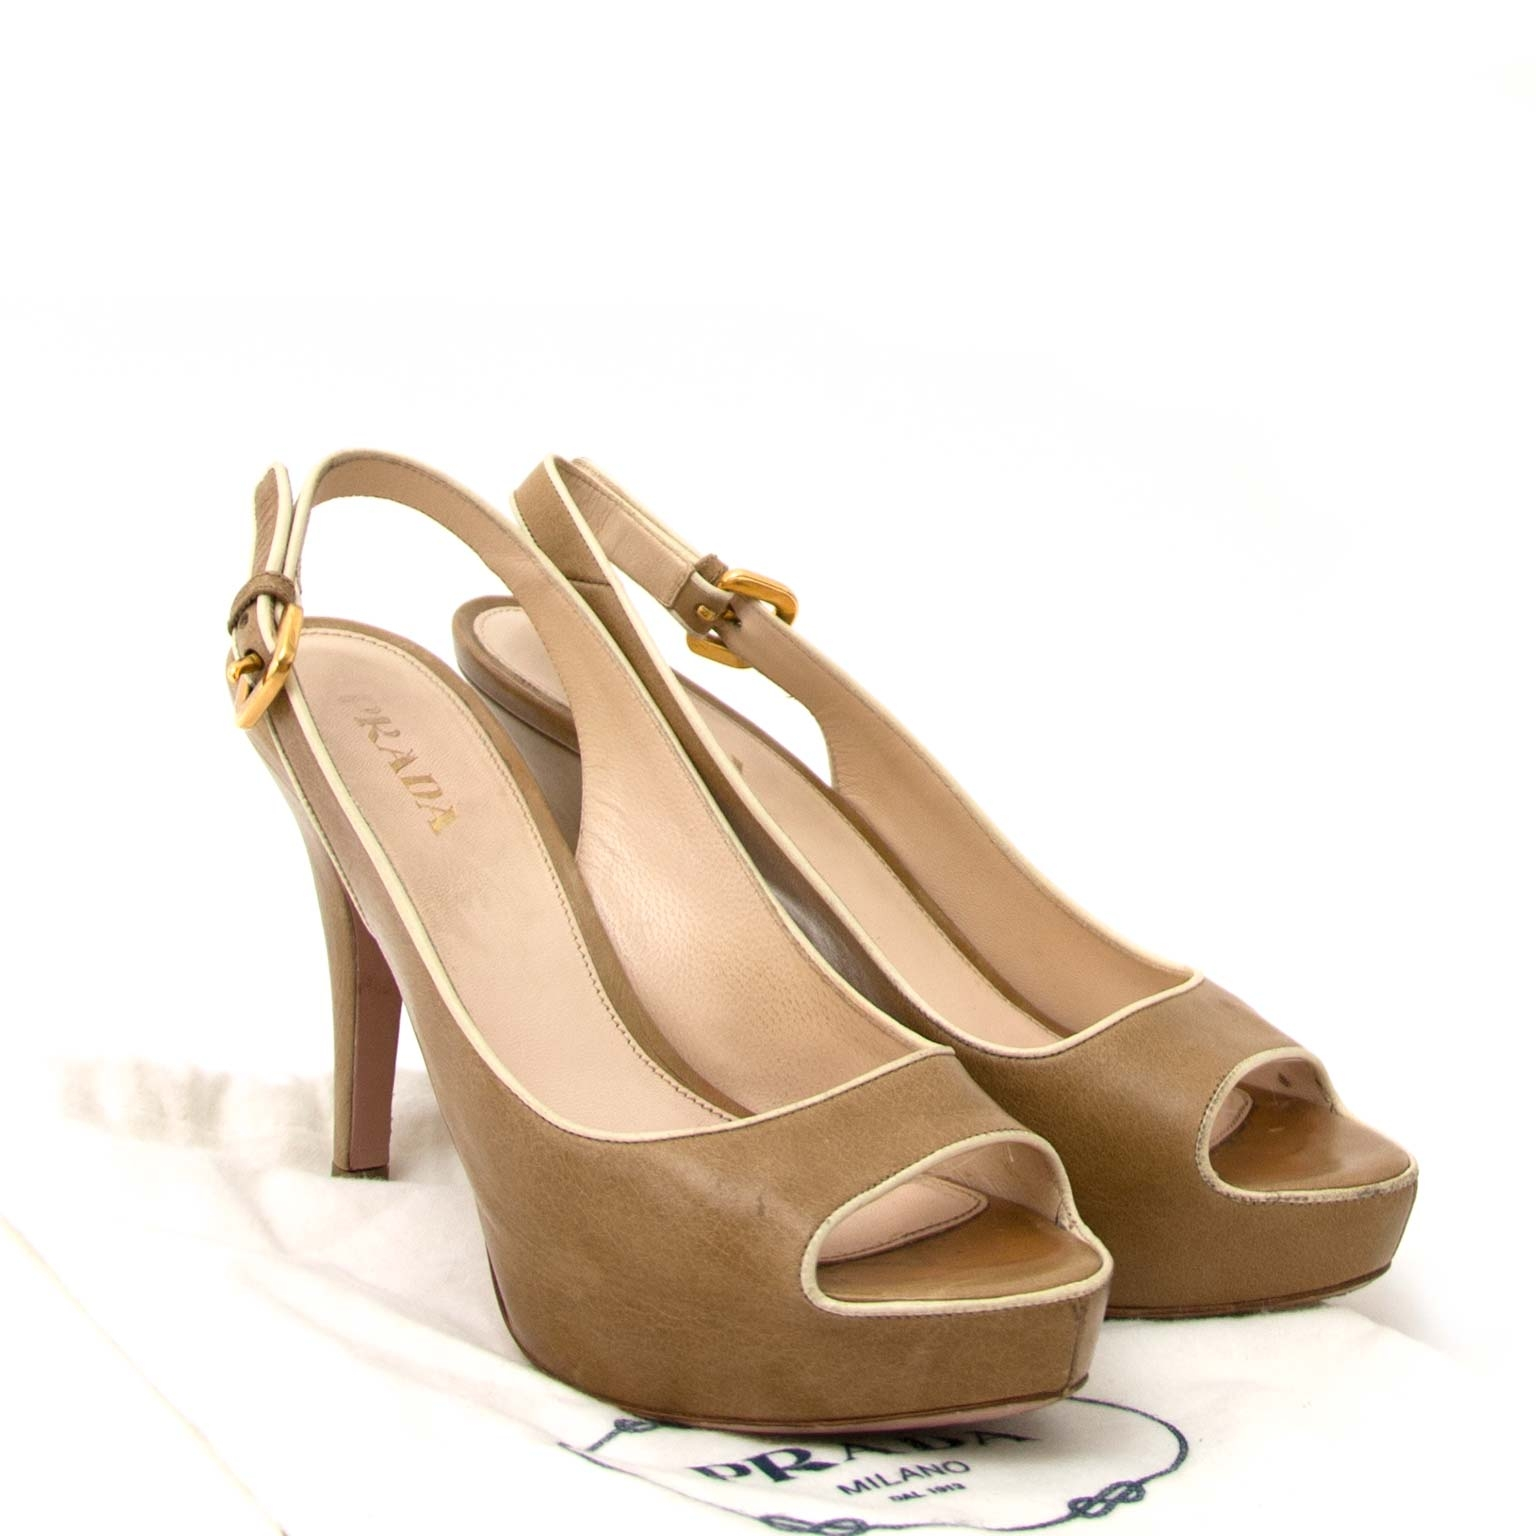 Prada slingback peep toe pumps now for sale at labellov vintage fashion webshop belgium